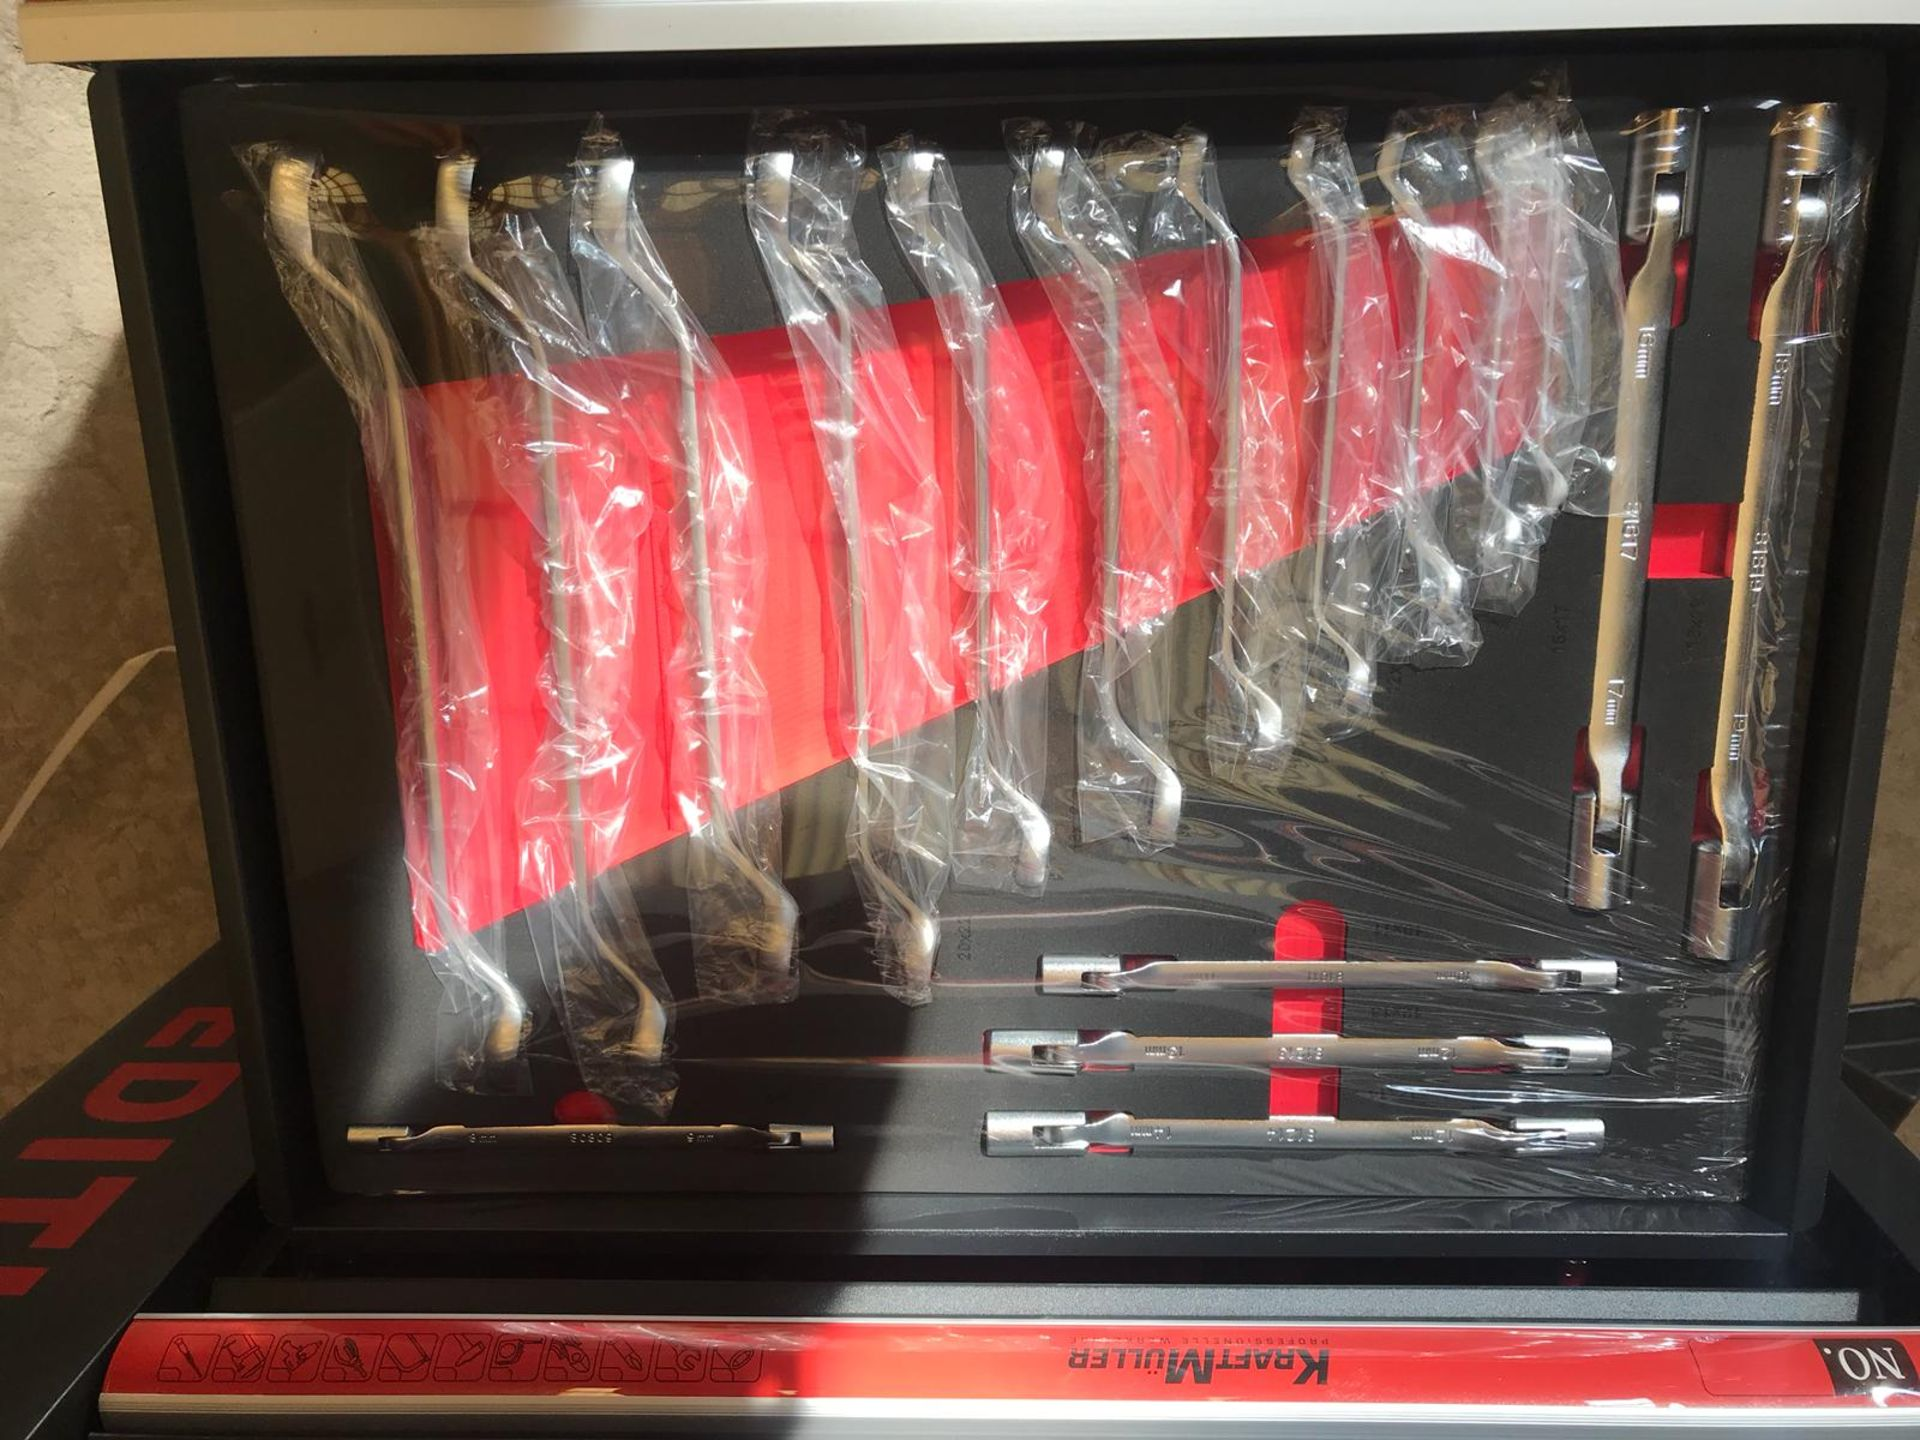 Lot 31692 - V Brand New Seven Drawer Locking Garage Tool Cabinet With Lockable Casters-Seven EVA Drawers of